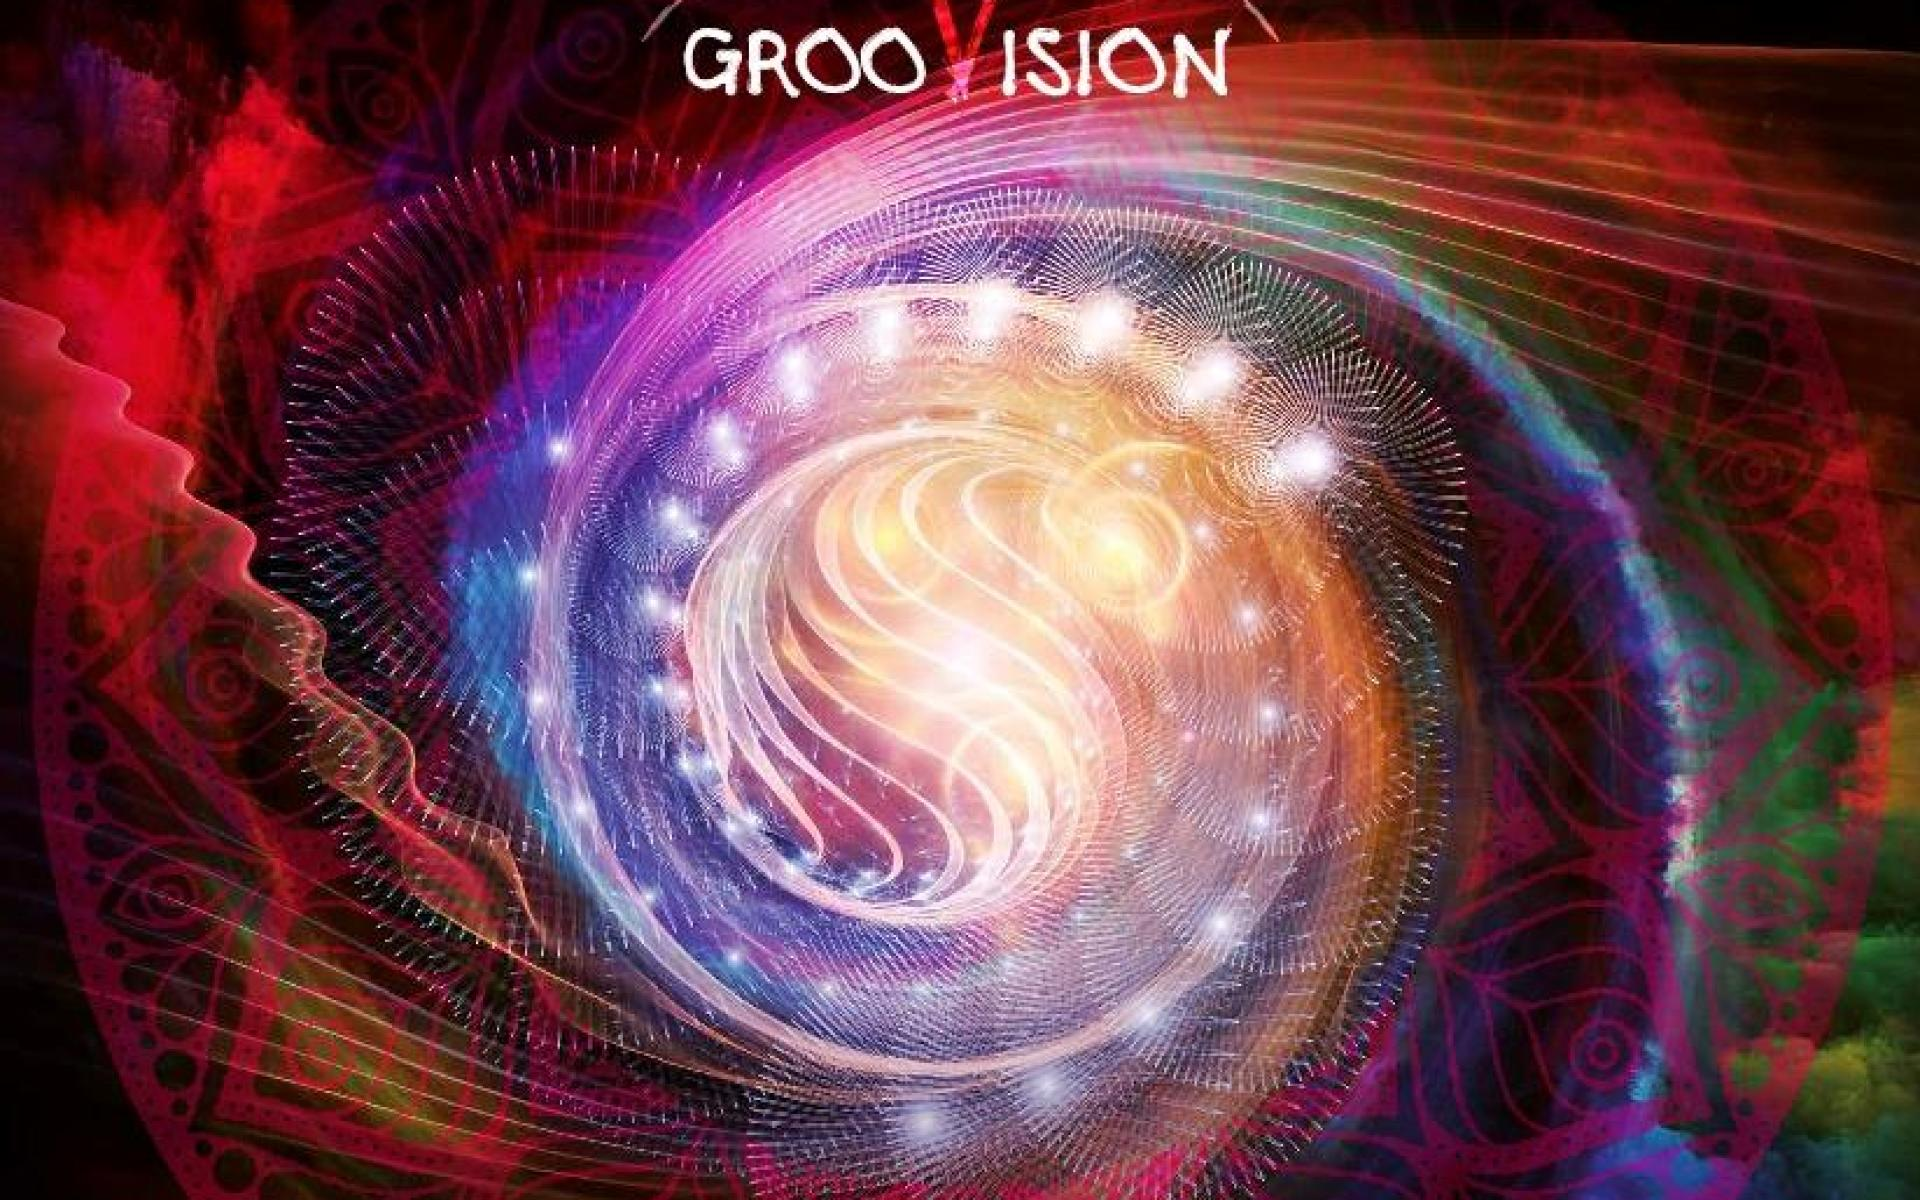 Groovision-digifile-sp0793-cover-17072017